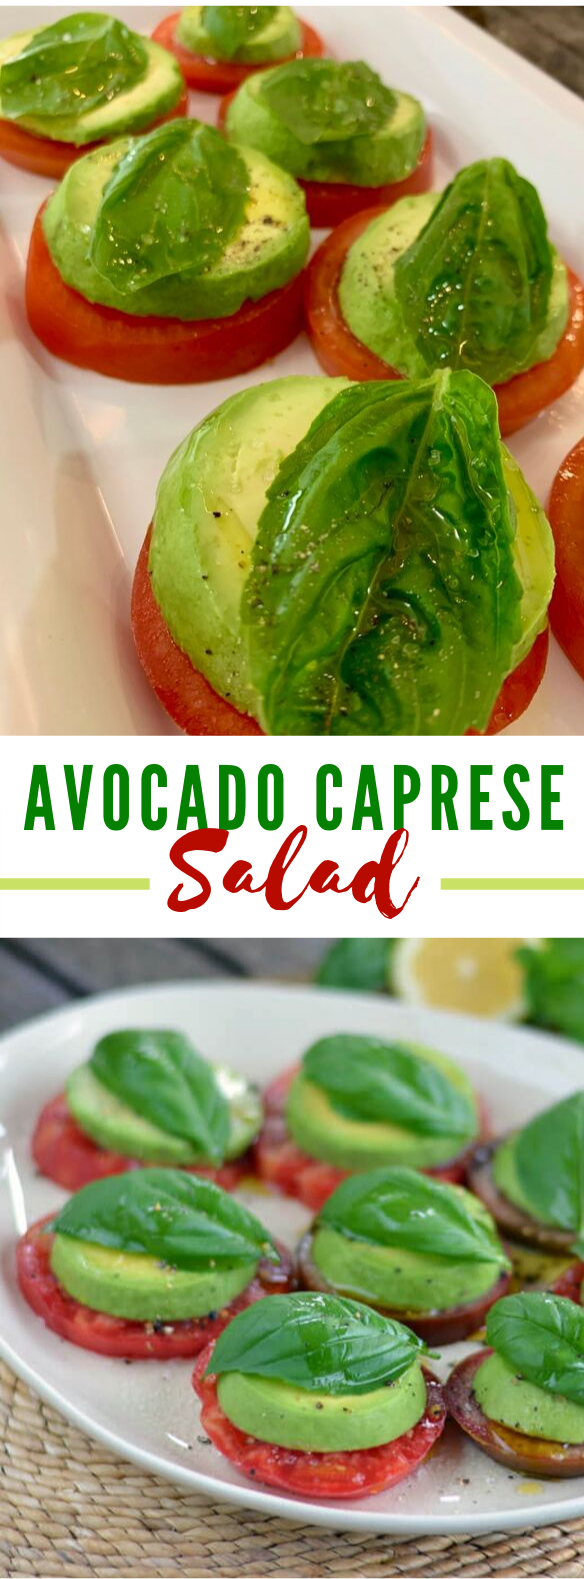 EASY AVOCADO CAPRESE SALAD (DAIRY FREE) #lowcarb #whole30